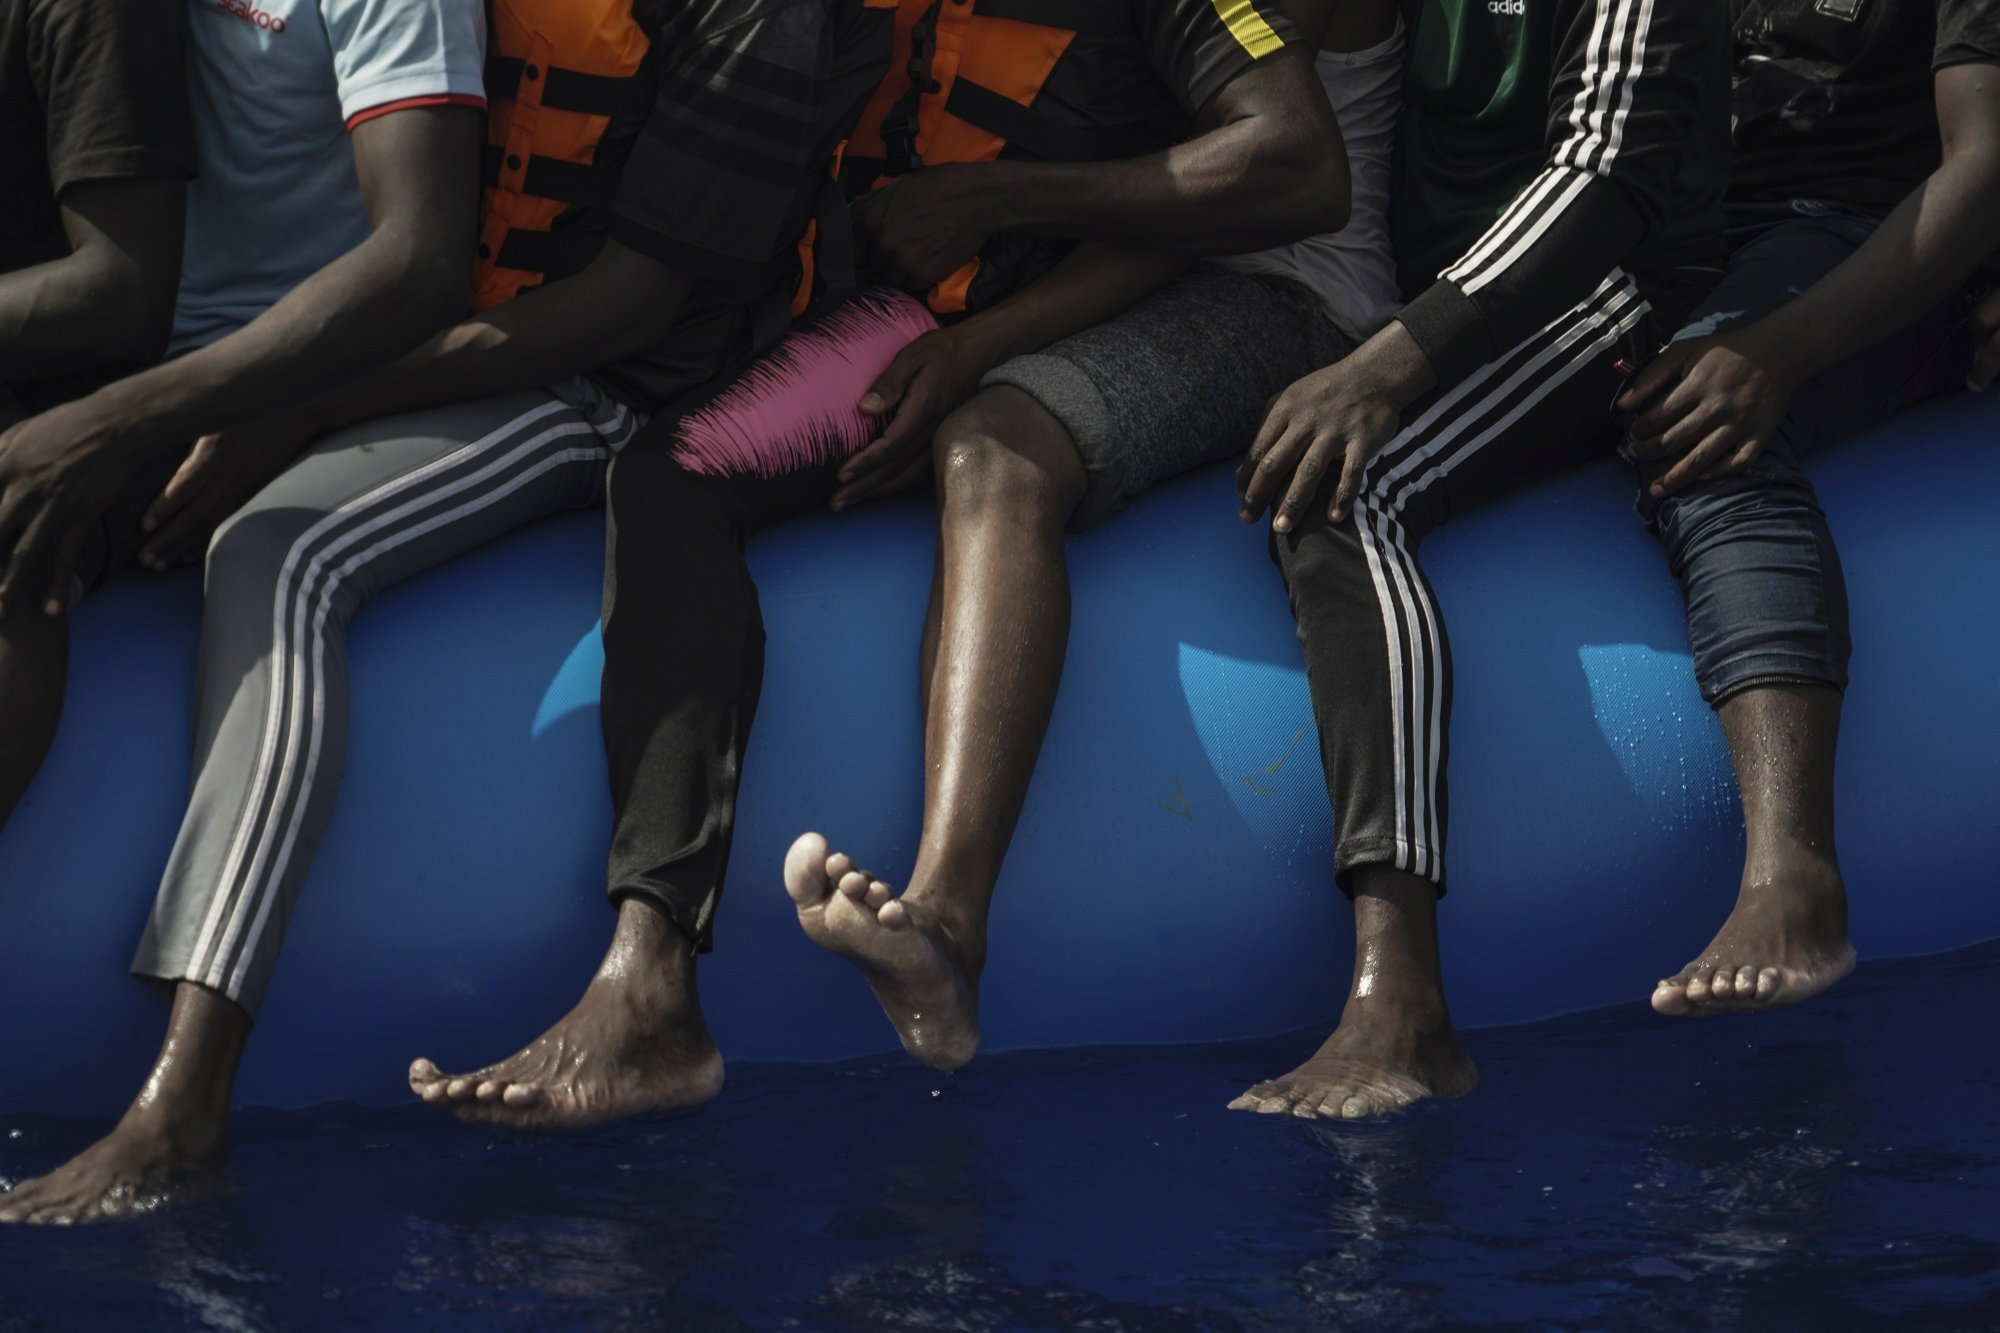 In this Sept. 17, 2019 photo, migrants sit on an overcrowded rubber boat as they wait to be rescued by the Ocean Viking humanitarian ship run by SOS Mediterranée and Doctors Without Borders in the Mediterranean Sea north of Libya. The EU has sent more than 327.9 million euros to Libya, with an additional 41 million approved in early December, largely funneled through UN agencies. However, the AP found that in a country without a functioning government, huge sums of European money have been diverted - in some cases with the knowledge of UN officials - to intertwined networks of militiamen, traffickers and coast guard members who exploit migrants. (AP Photo/Renata Brito)